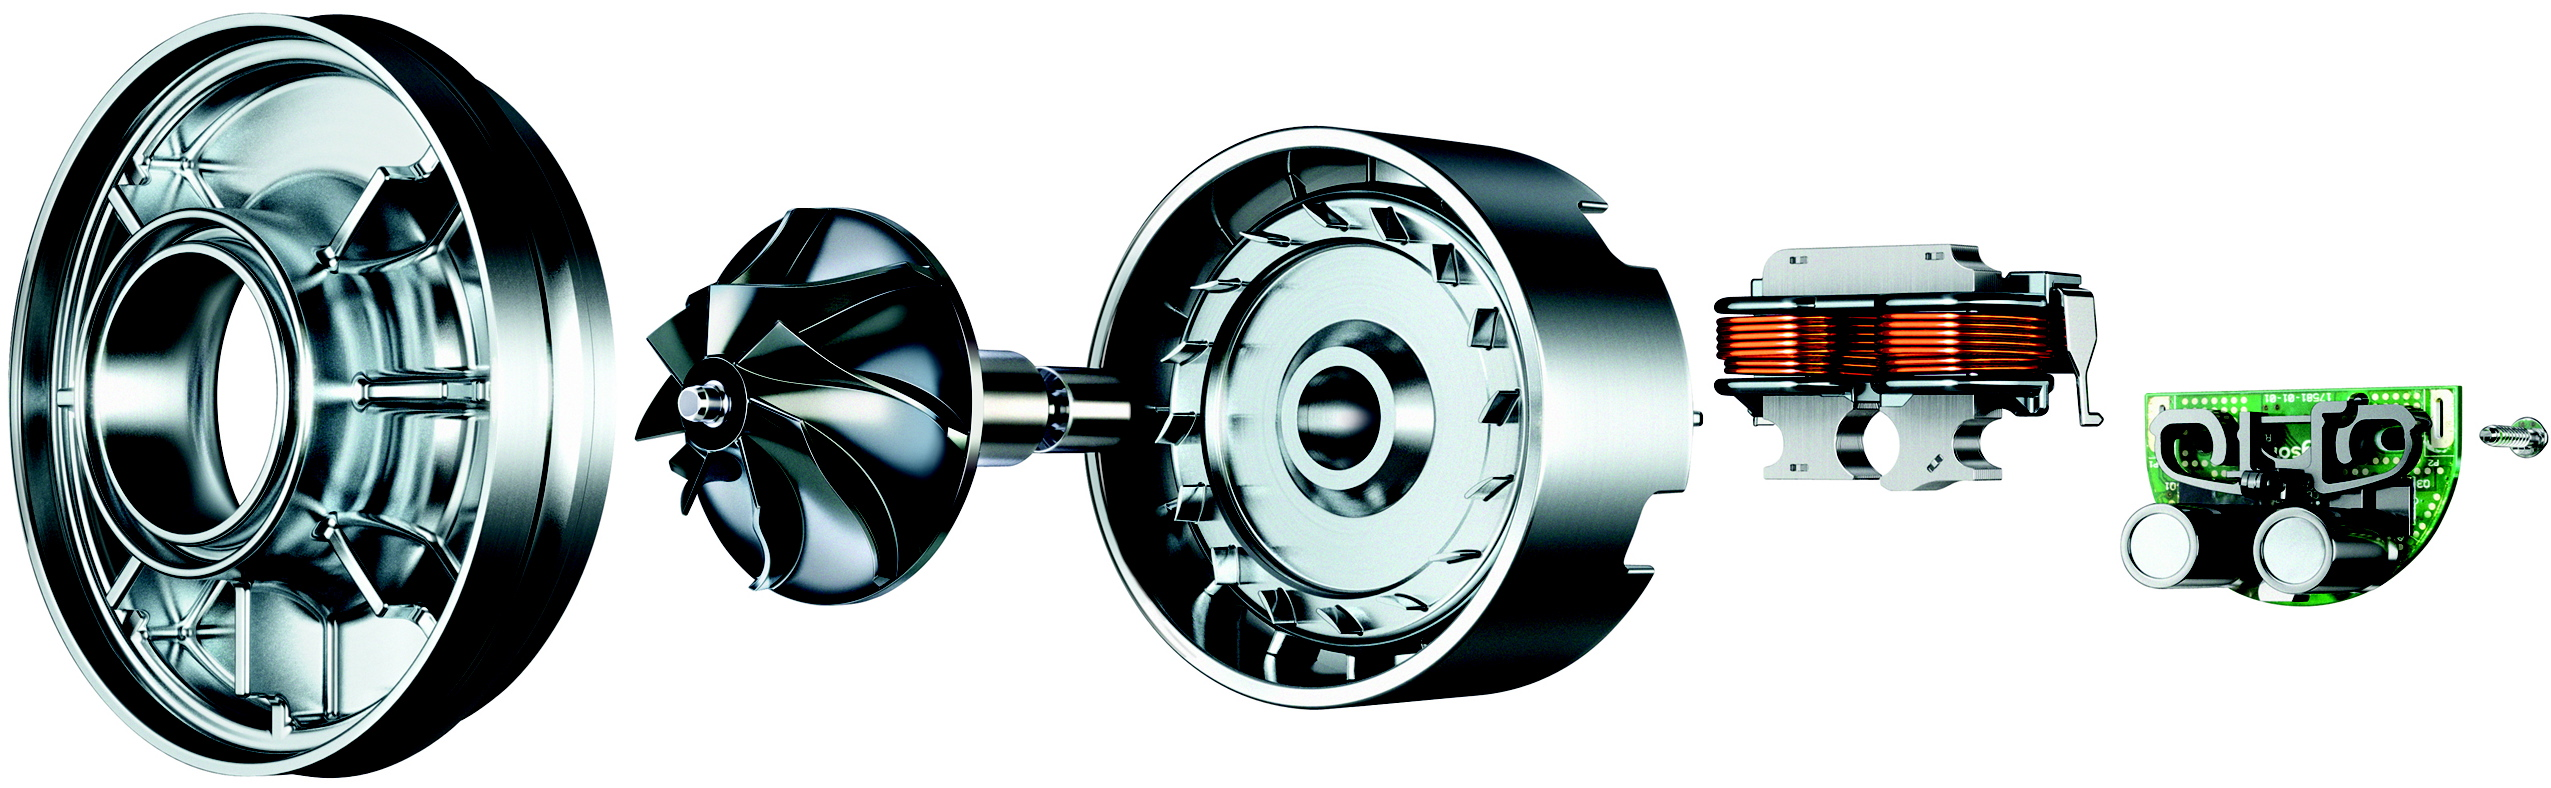 Dyson Vacuum Cleaner Spinoff Com